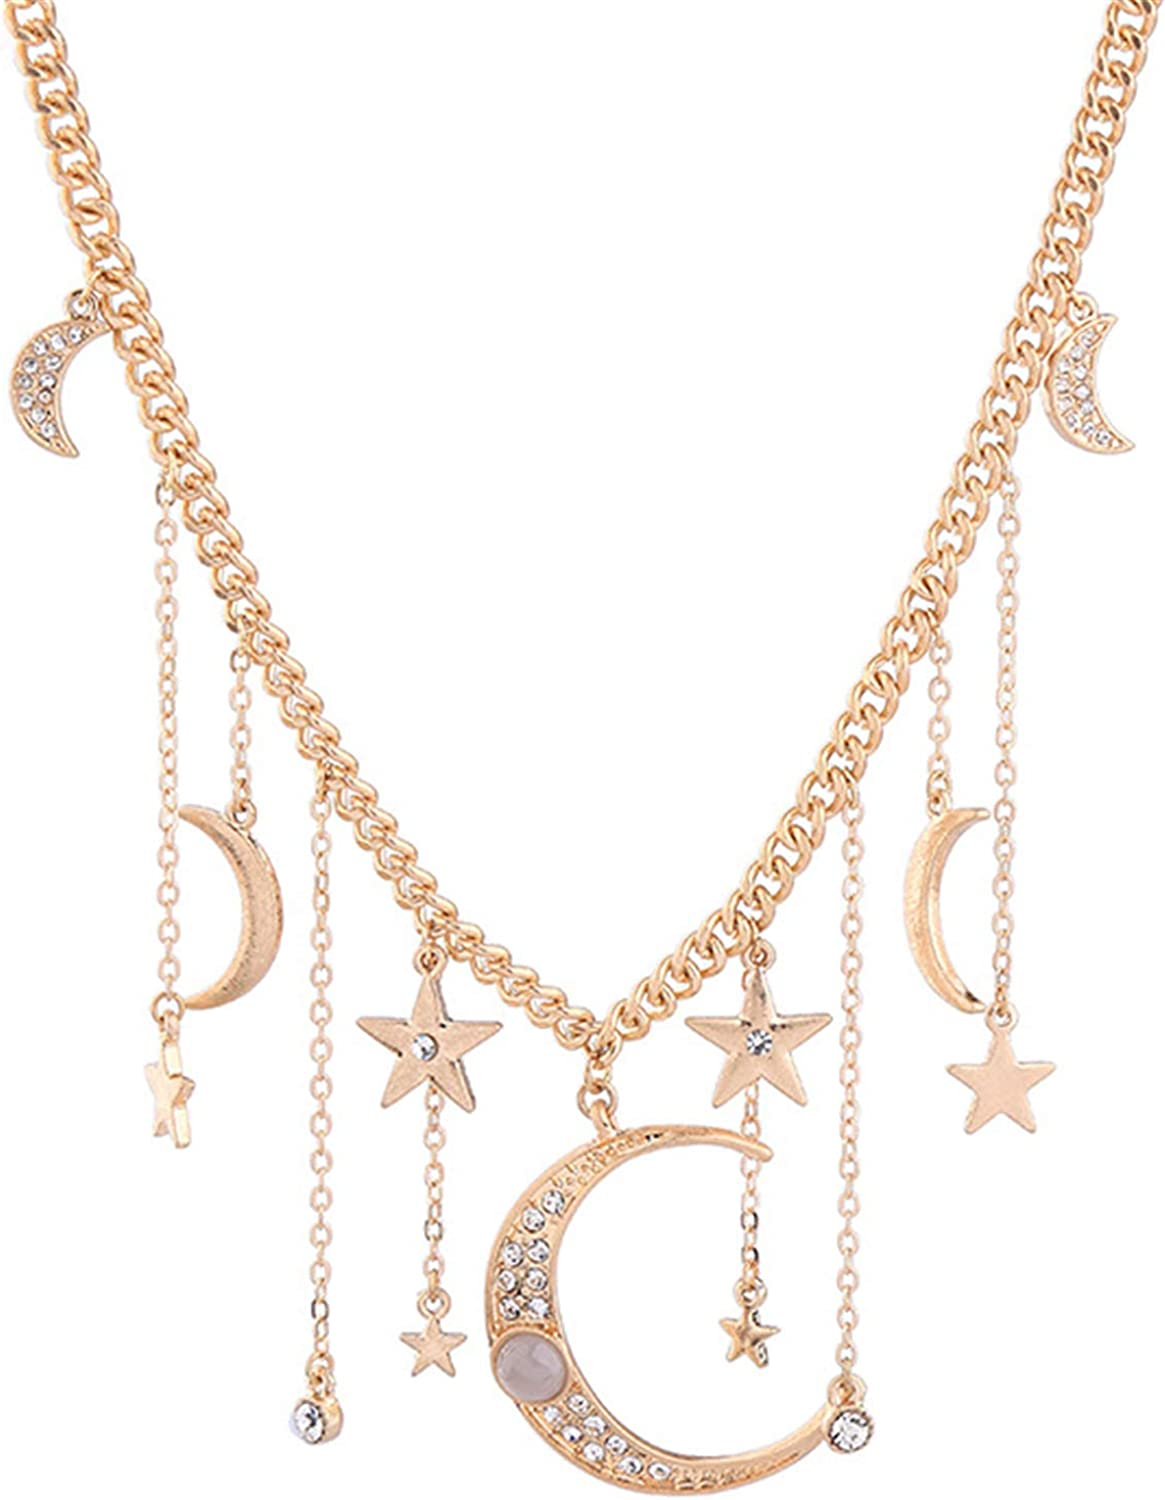 HMOOY Moon and Star Pendant Necklace, Fashion Gold Plated Retro Crystal Crescent Moon Star necklace Delicate Chain Necklace Accessories Jewelry for Women Girls